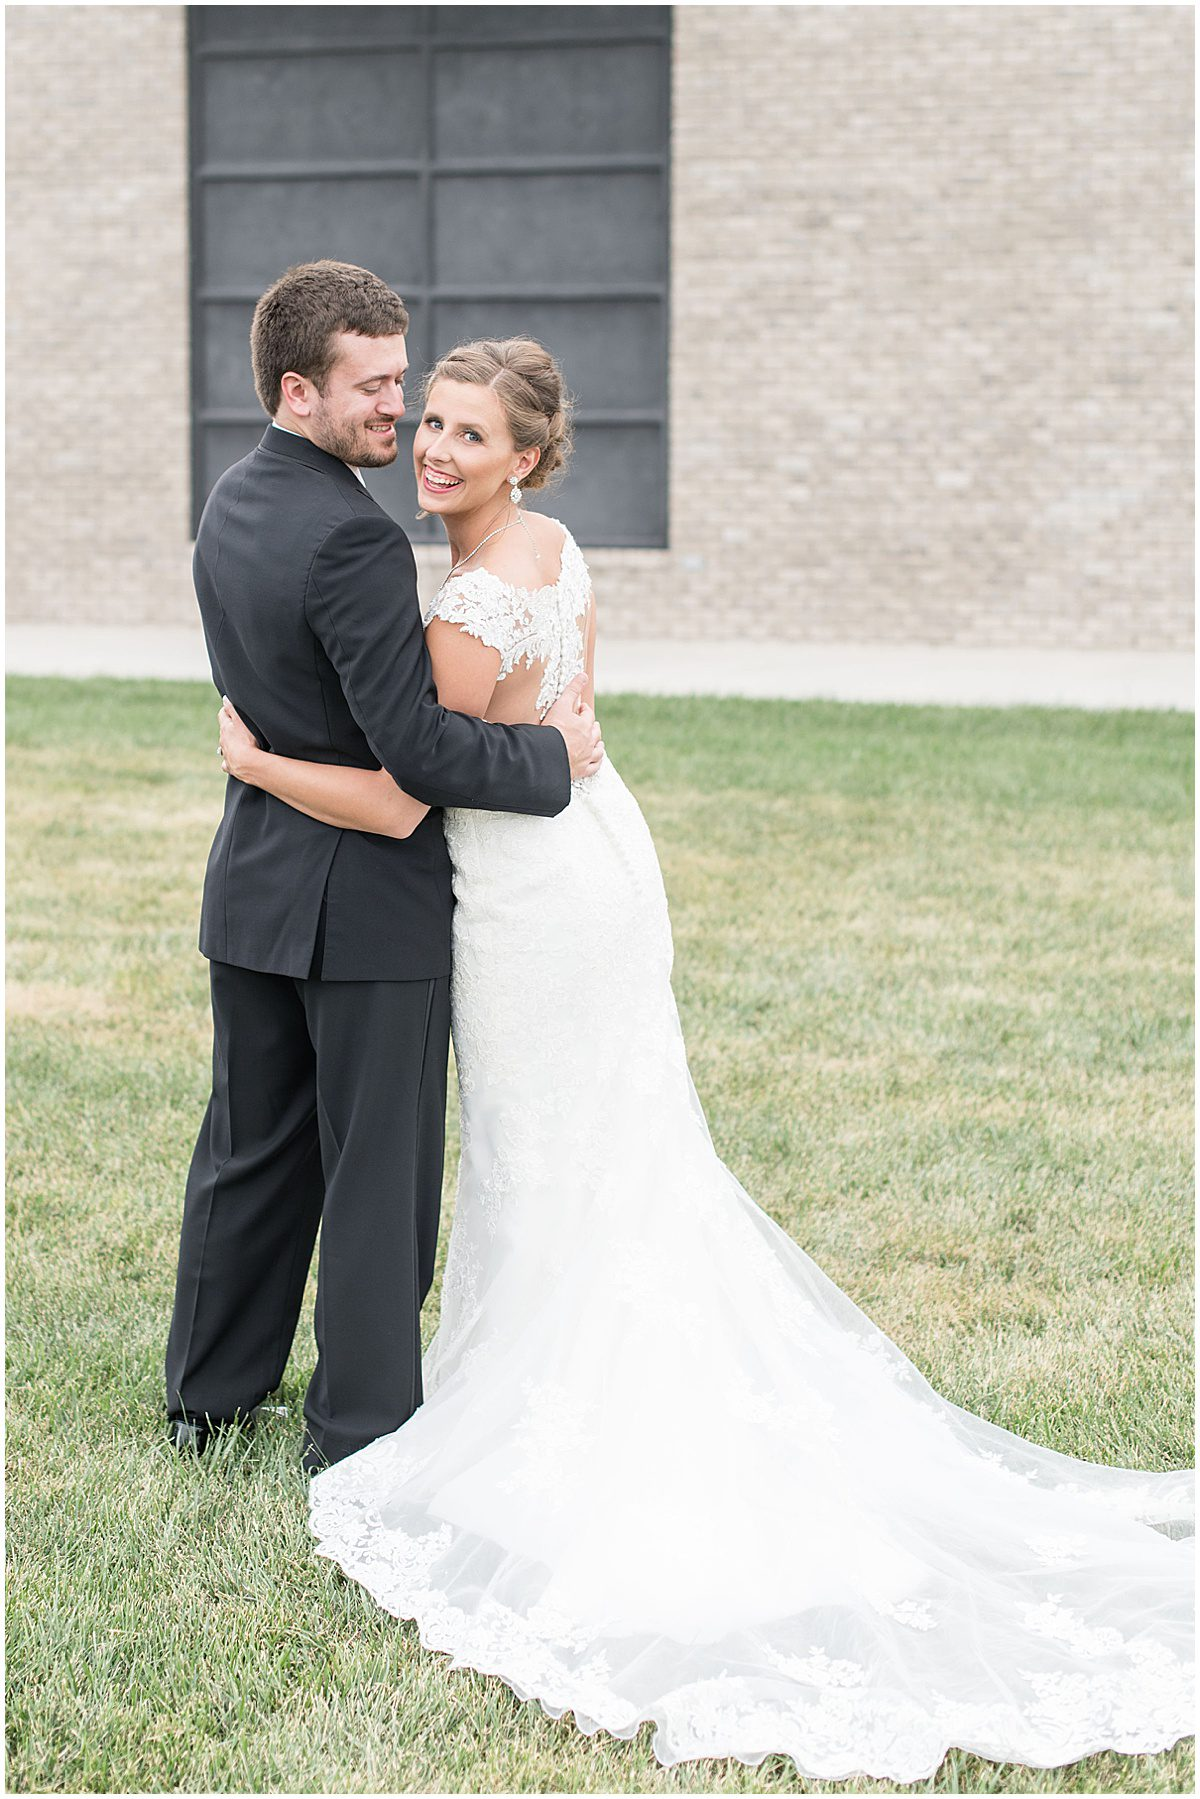 Just married photos after Bel Air Events wedding in Kokomo, Indiana by Victoria Rayburn Photography